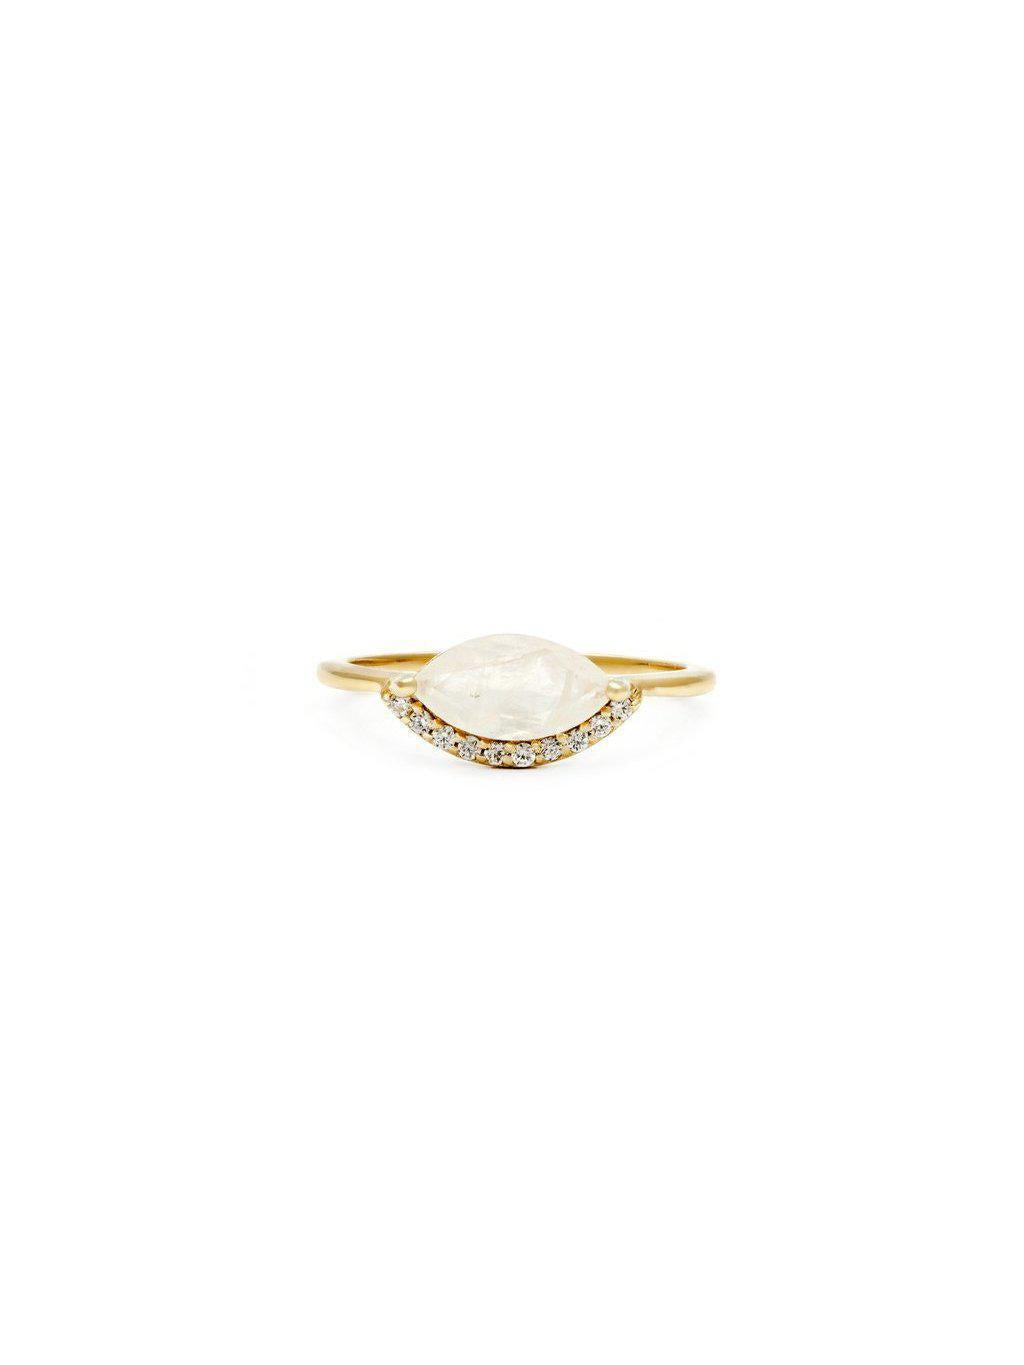 Leah Alexandra Domingo Ring-Jewerly - Rings-Sattva Boutique